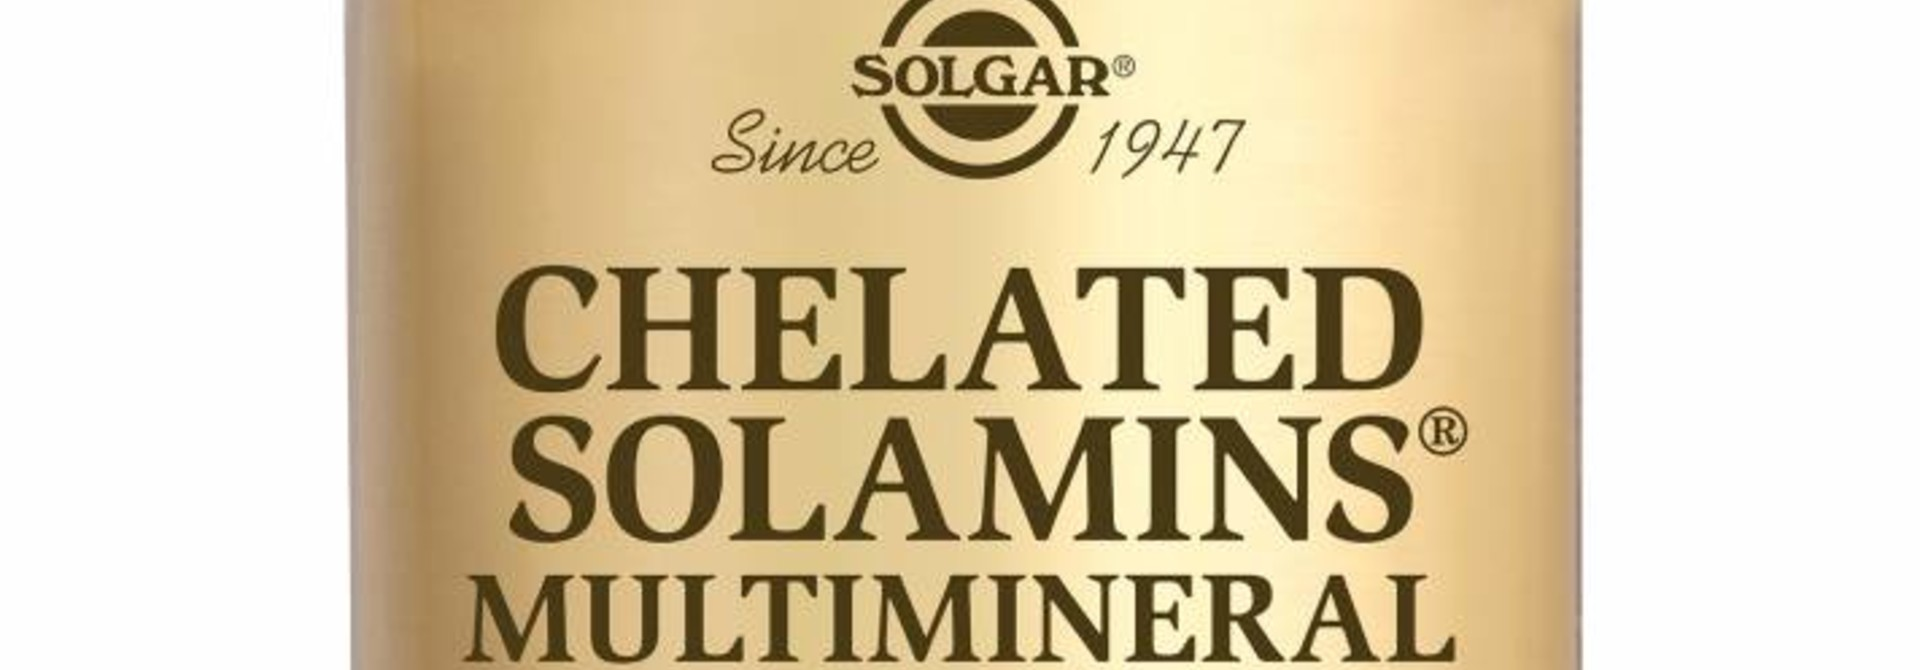 Chelated Solamins® Multimineral 90 tabletten